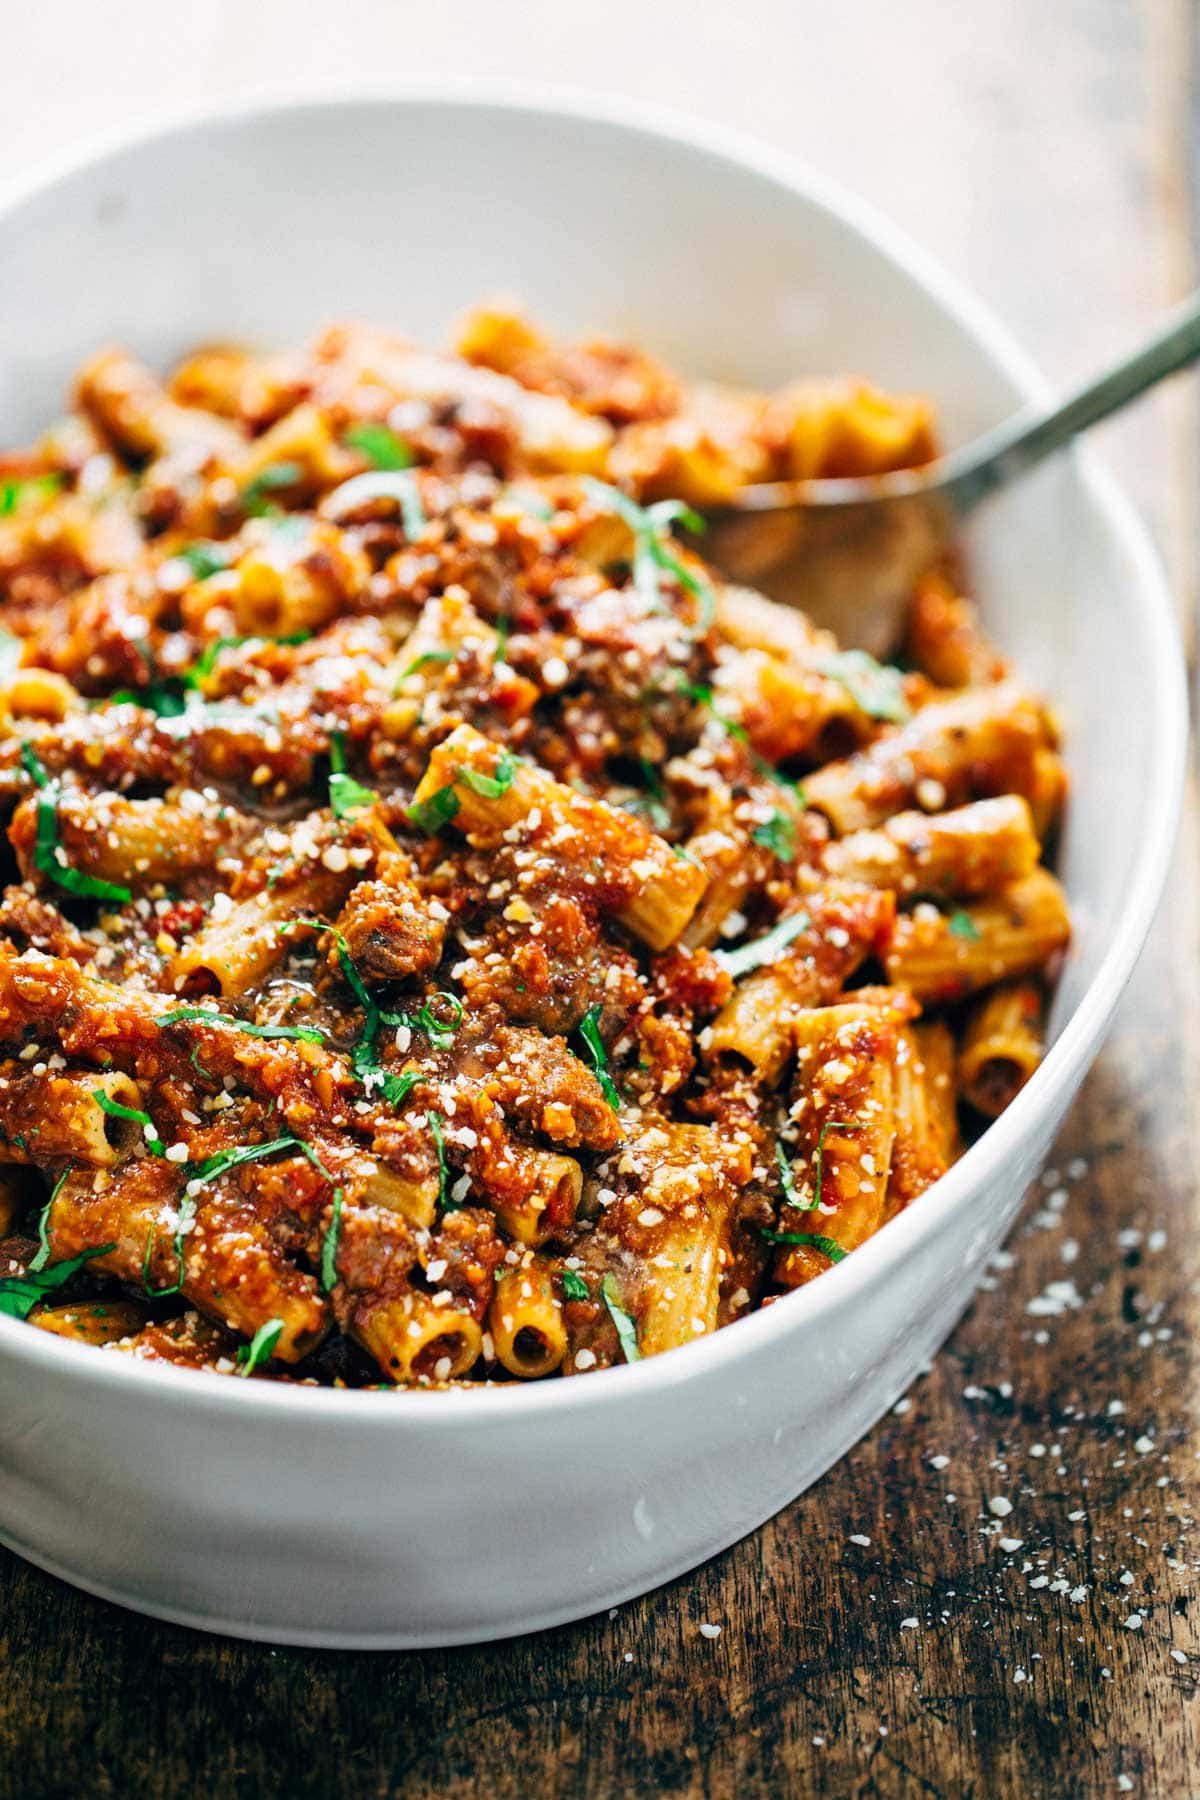 Spicy Dinner Recipes  Spicy Sausage Rigatoni Recipe Pinch of Yum